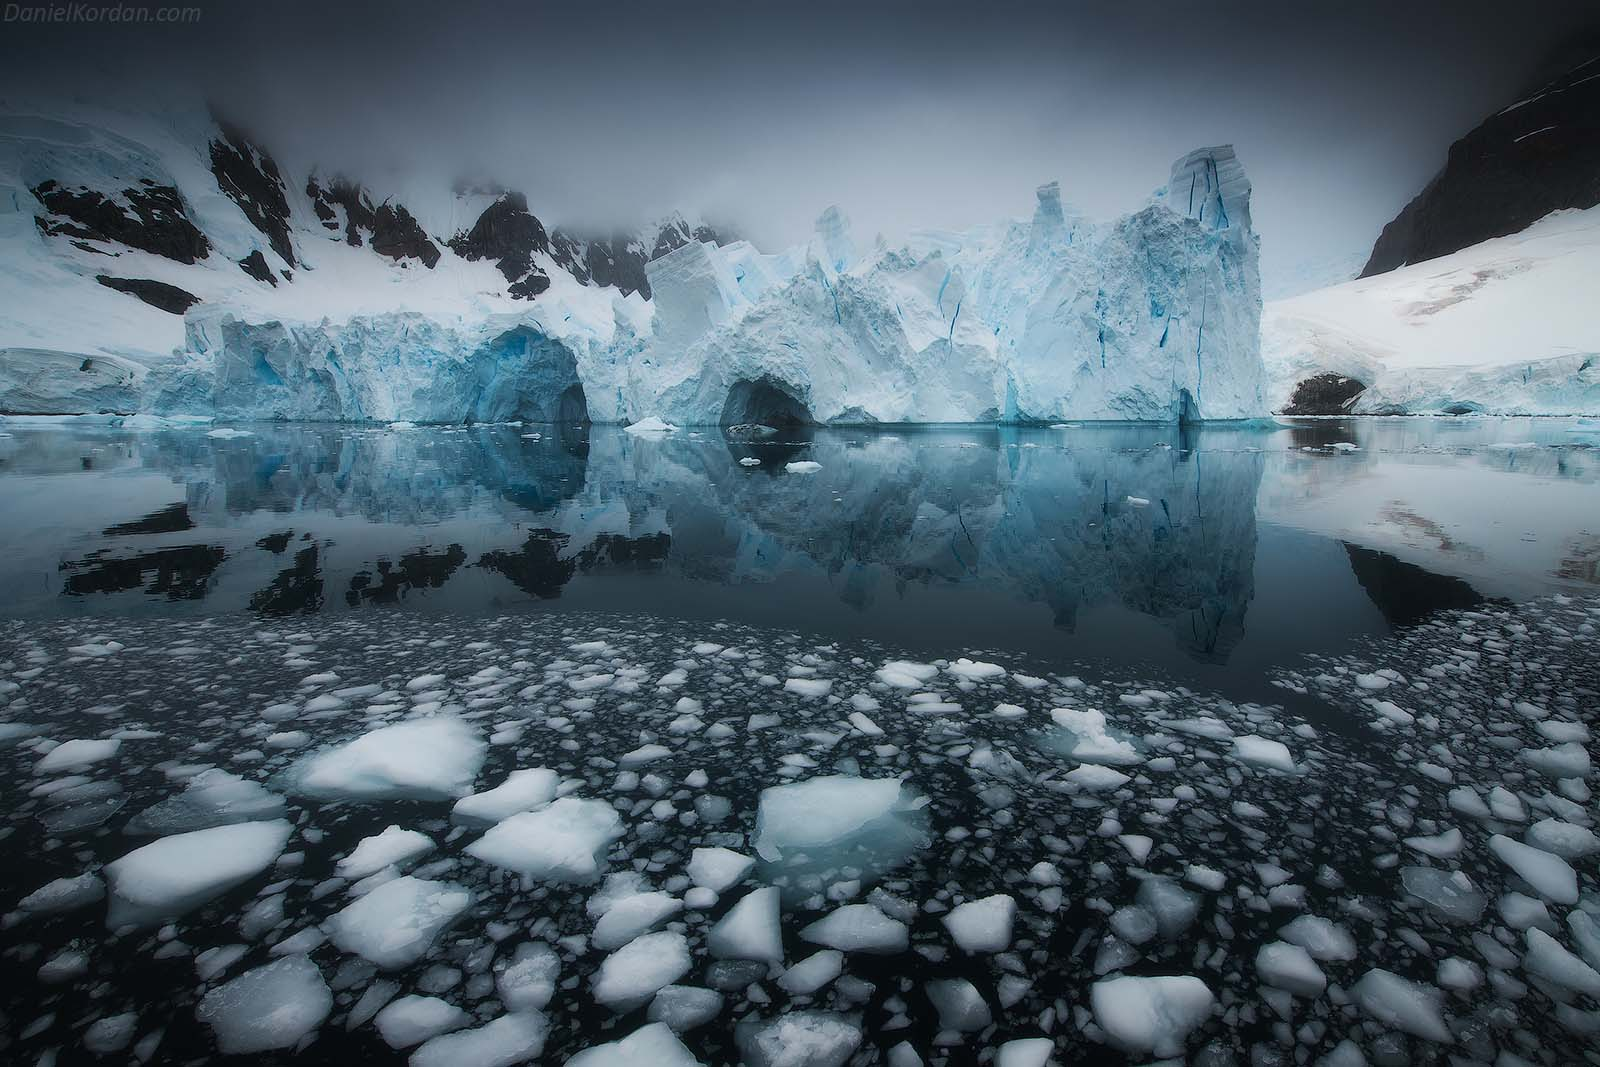 22 Day Antarctica Photography Expedition on Bark Europa - day 17